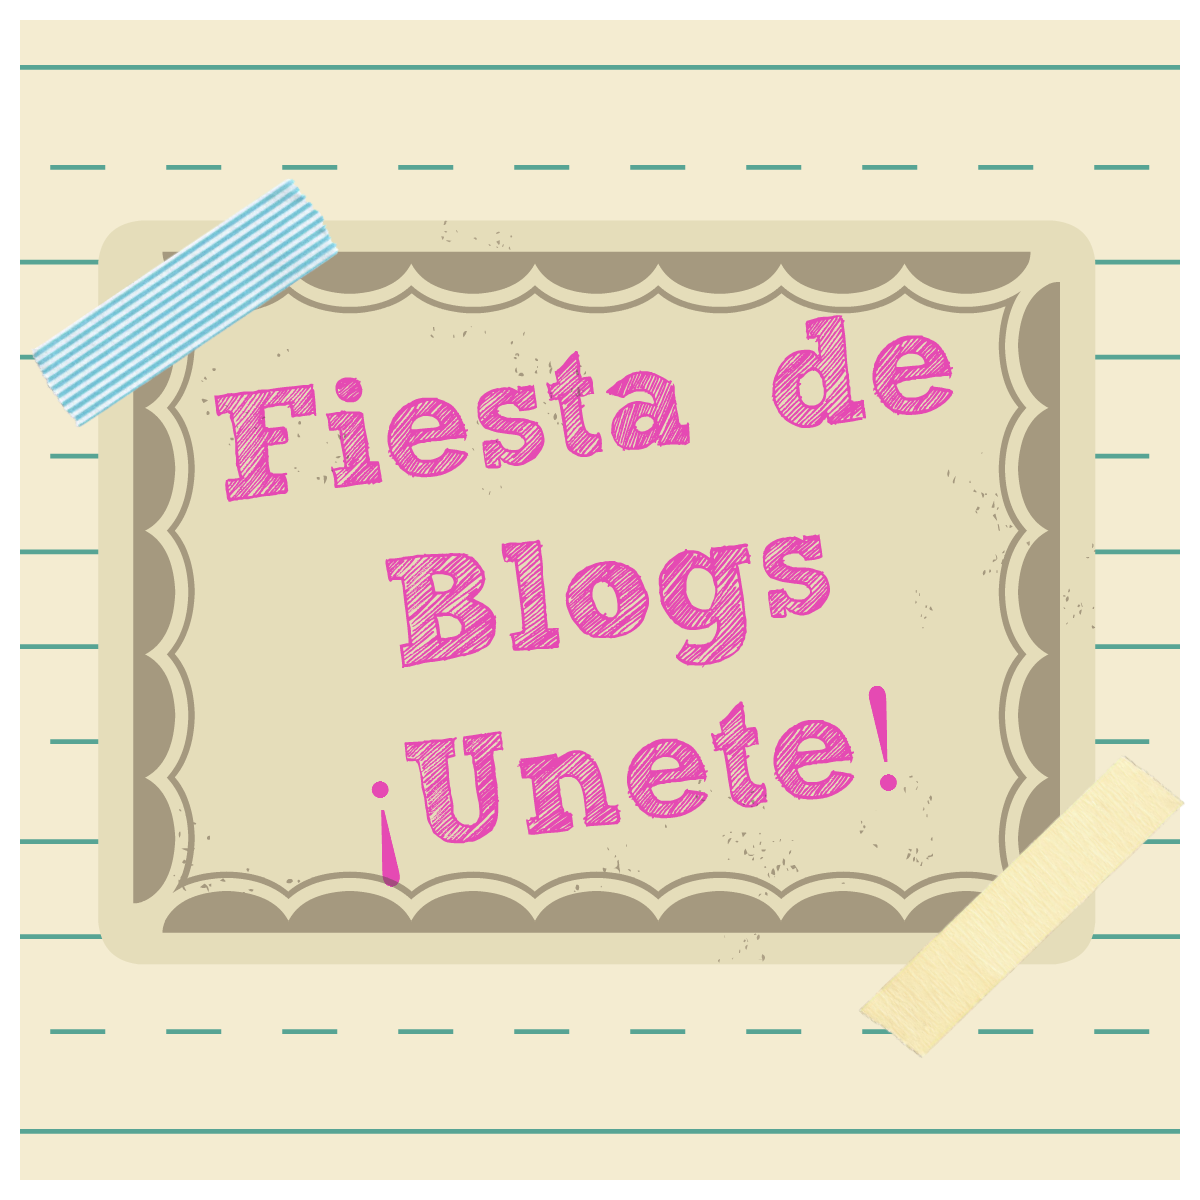 Fiesta de Blogs